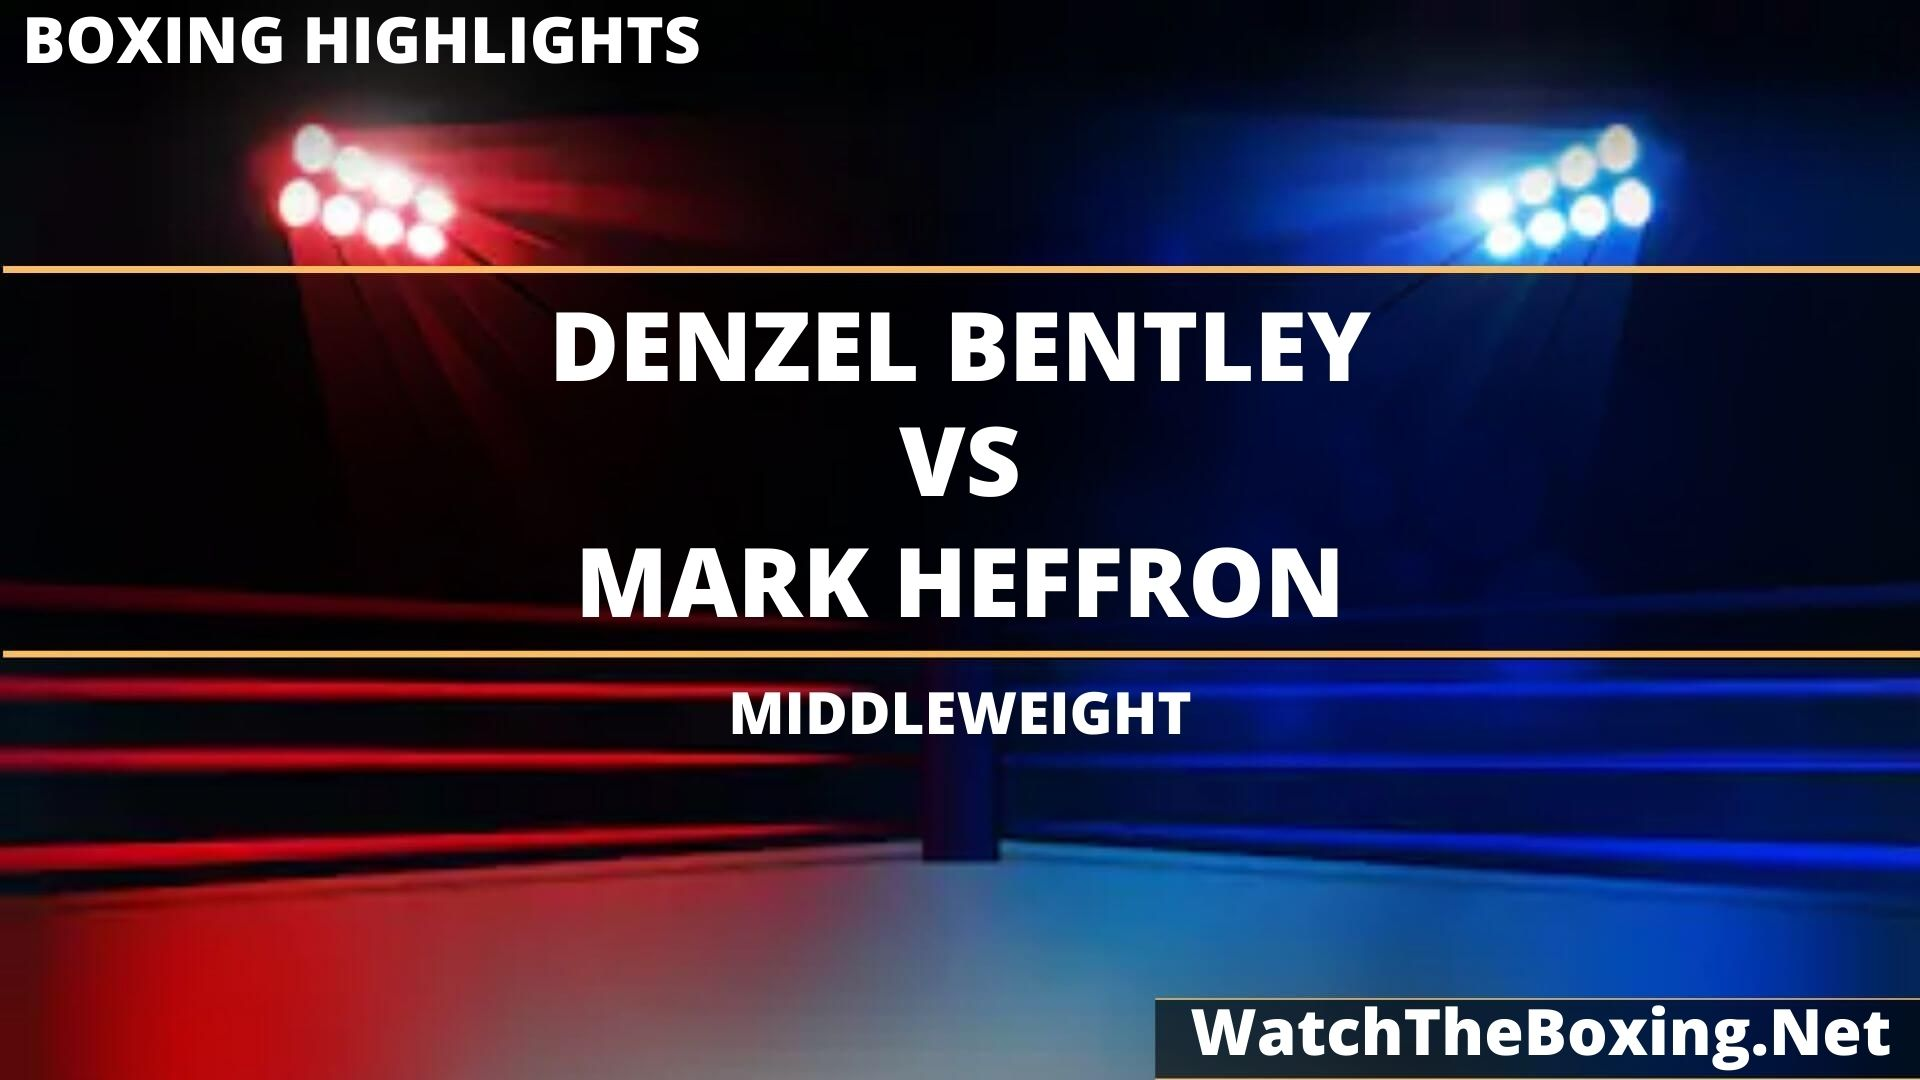 Denzel Bentley Vs Mark Heffron Highlights 2020 Middleweight